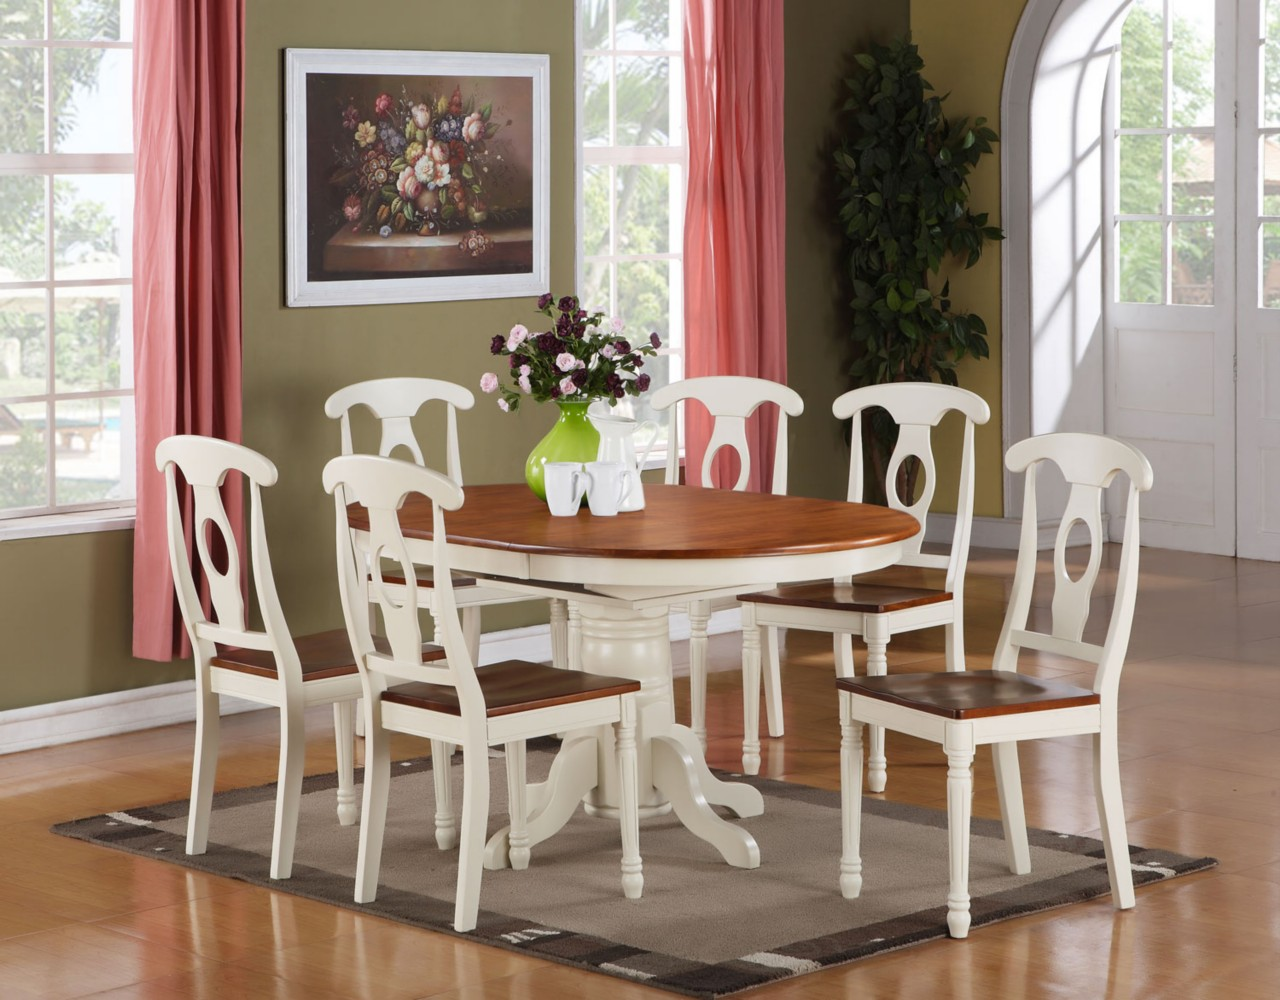 5pc oval dinette kitchen dining room set table with 4 chairs in buttermilk brown ebay. Black Bedroom Furniture Sets. Home Design Ideas